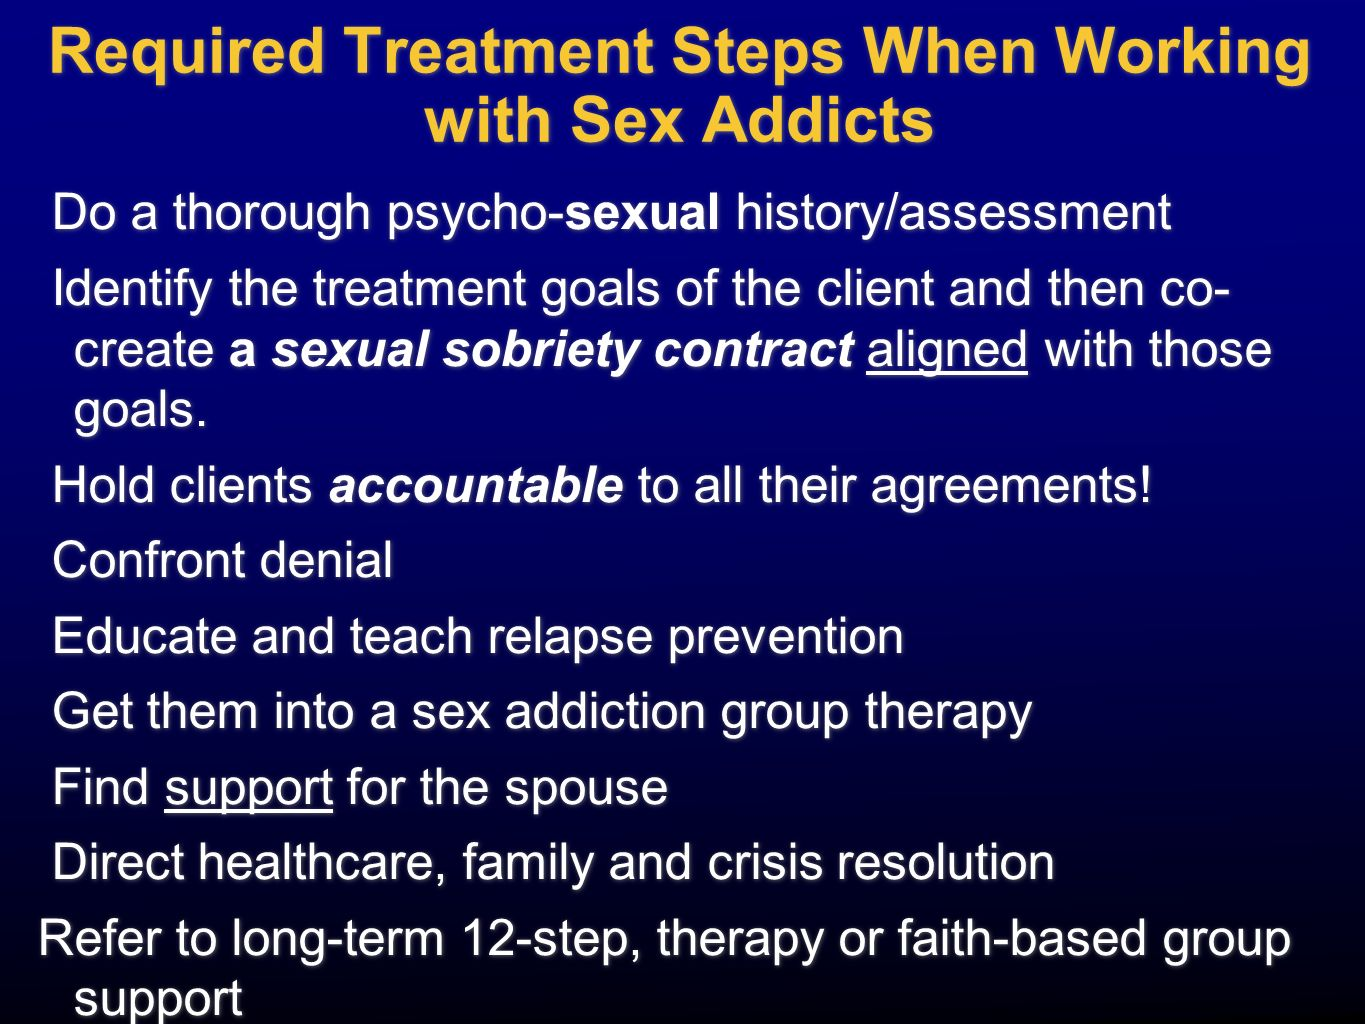 Required Treatment Steps When Working with Sex Addicts